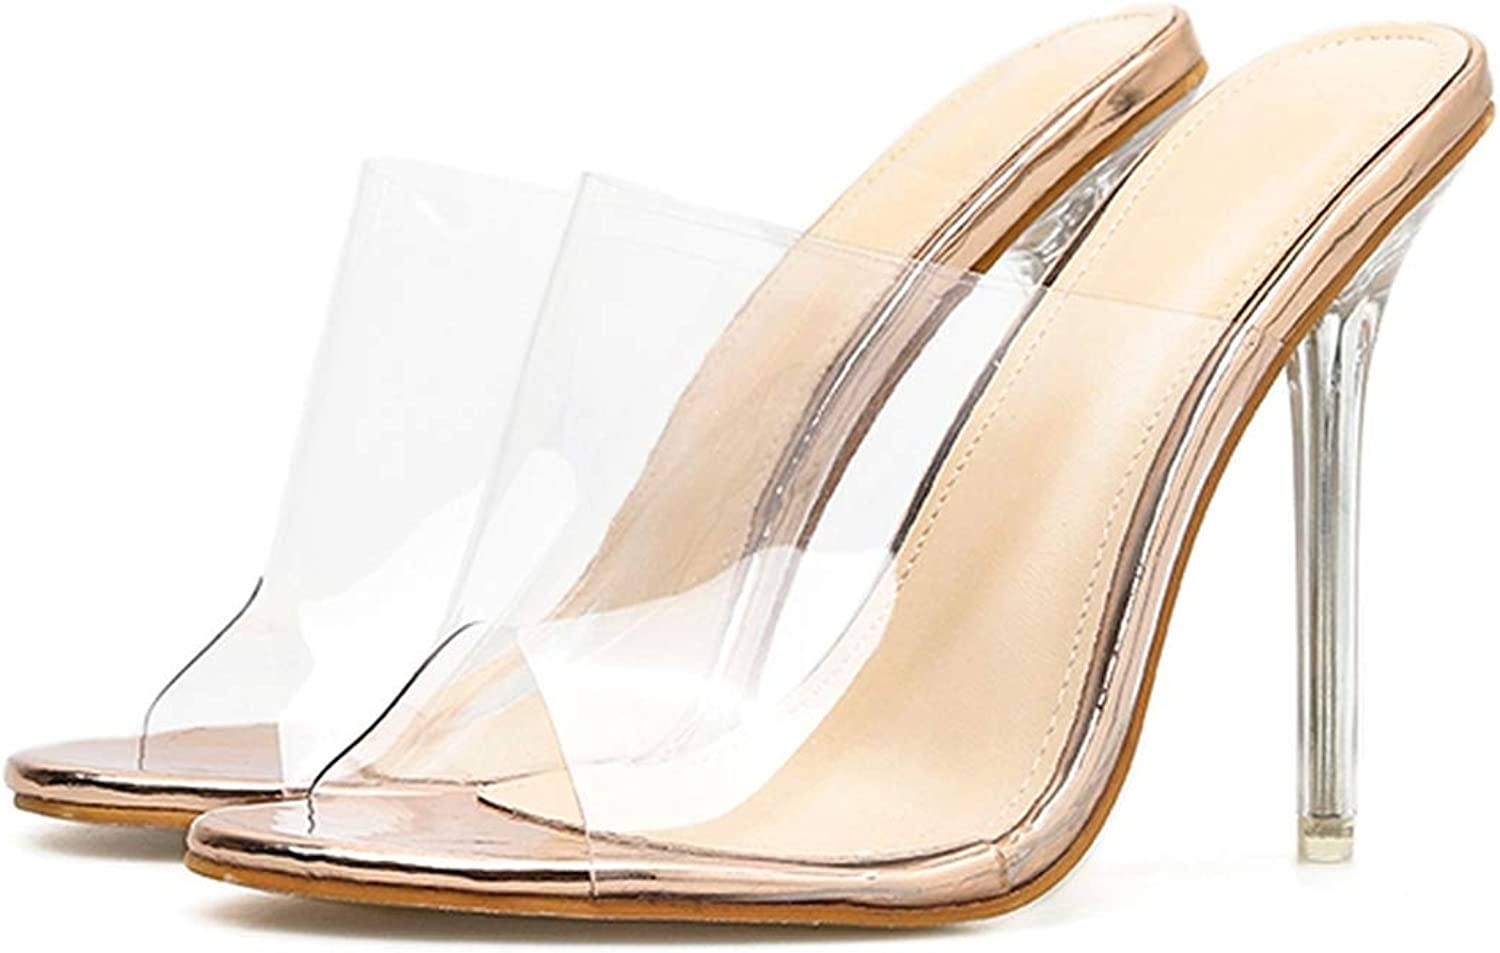 WC-hot Jelly Sandals Crystal Open Toed Sexy Thin Heels Crystal Women Transparent Heel Sandals